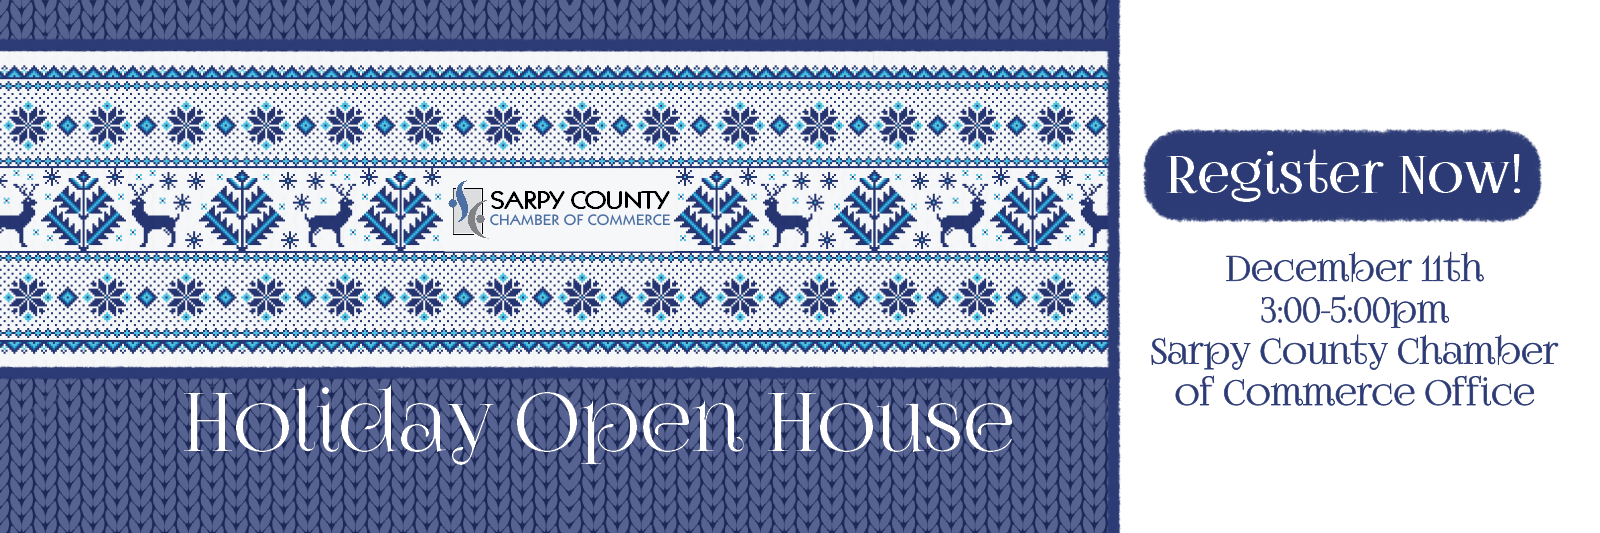 2019-new-holiday-open-house.png